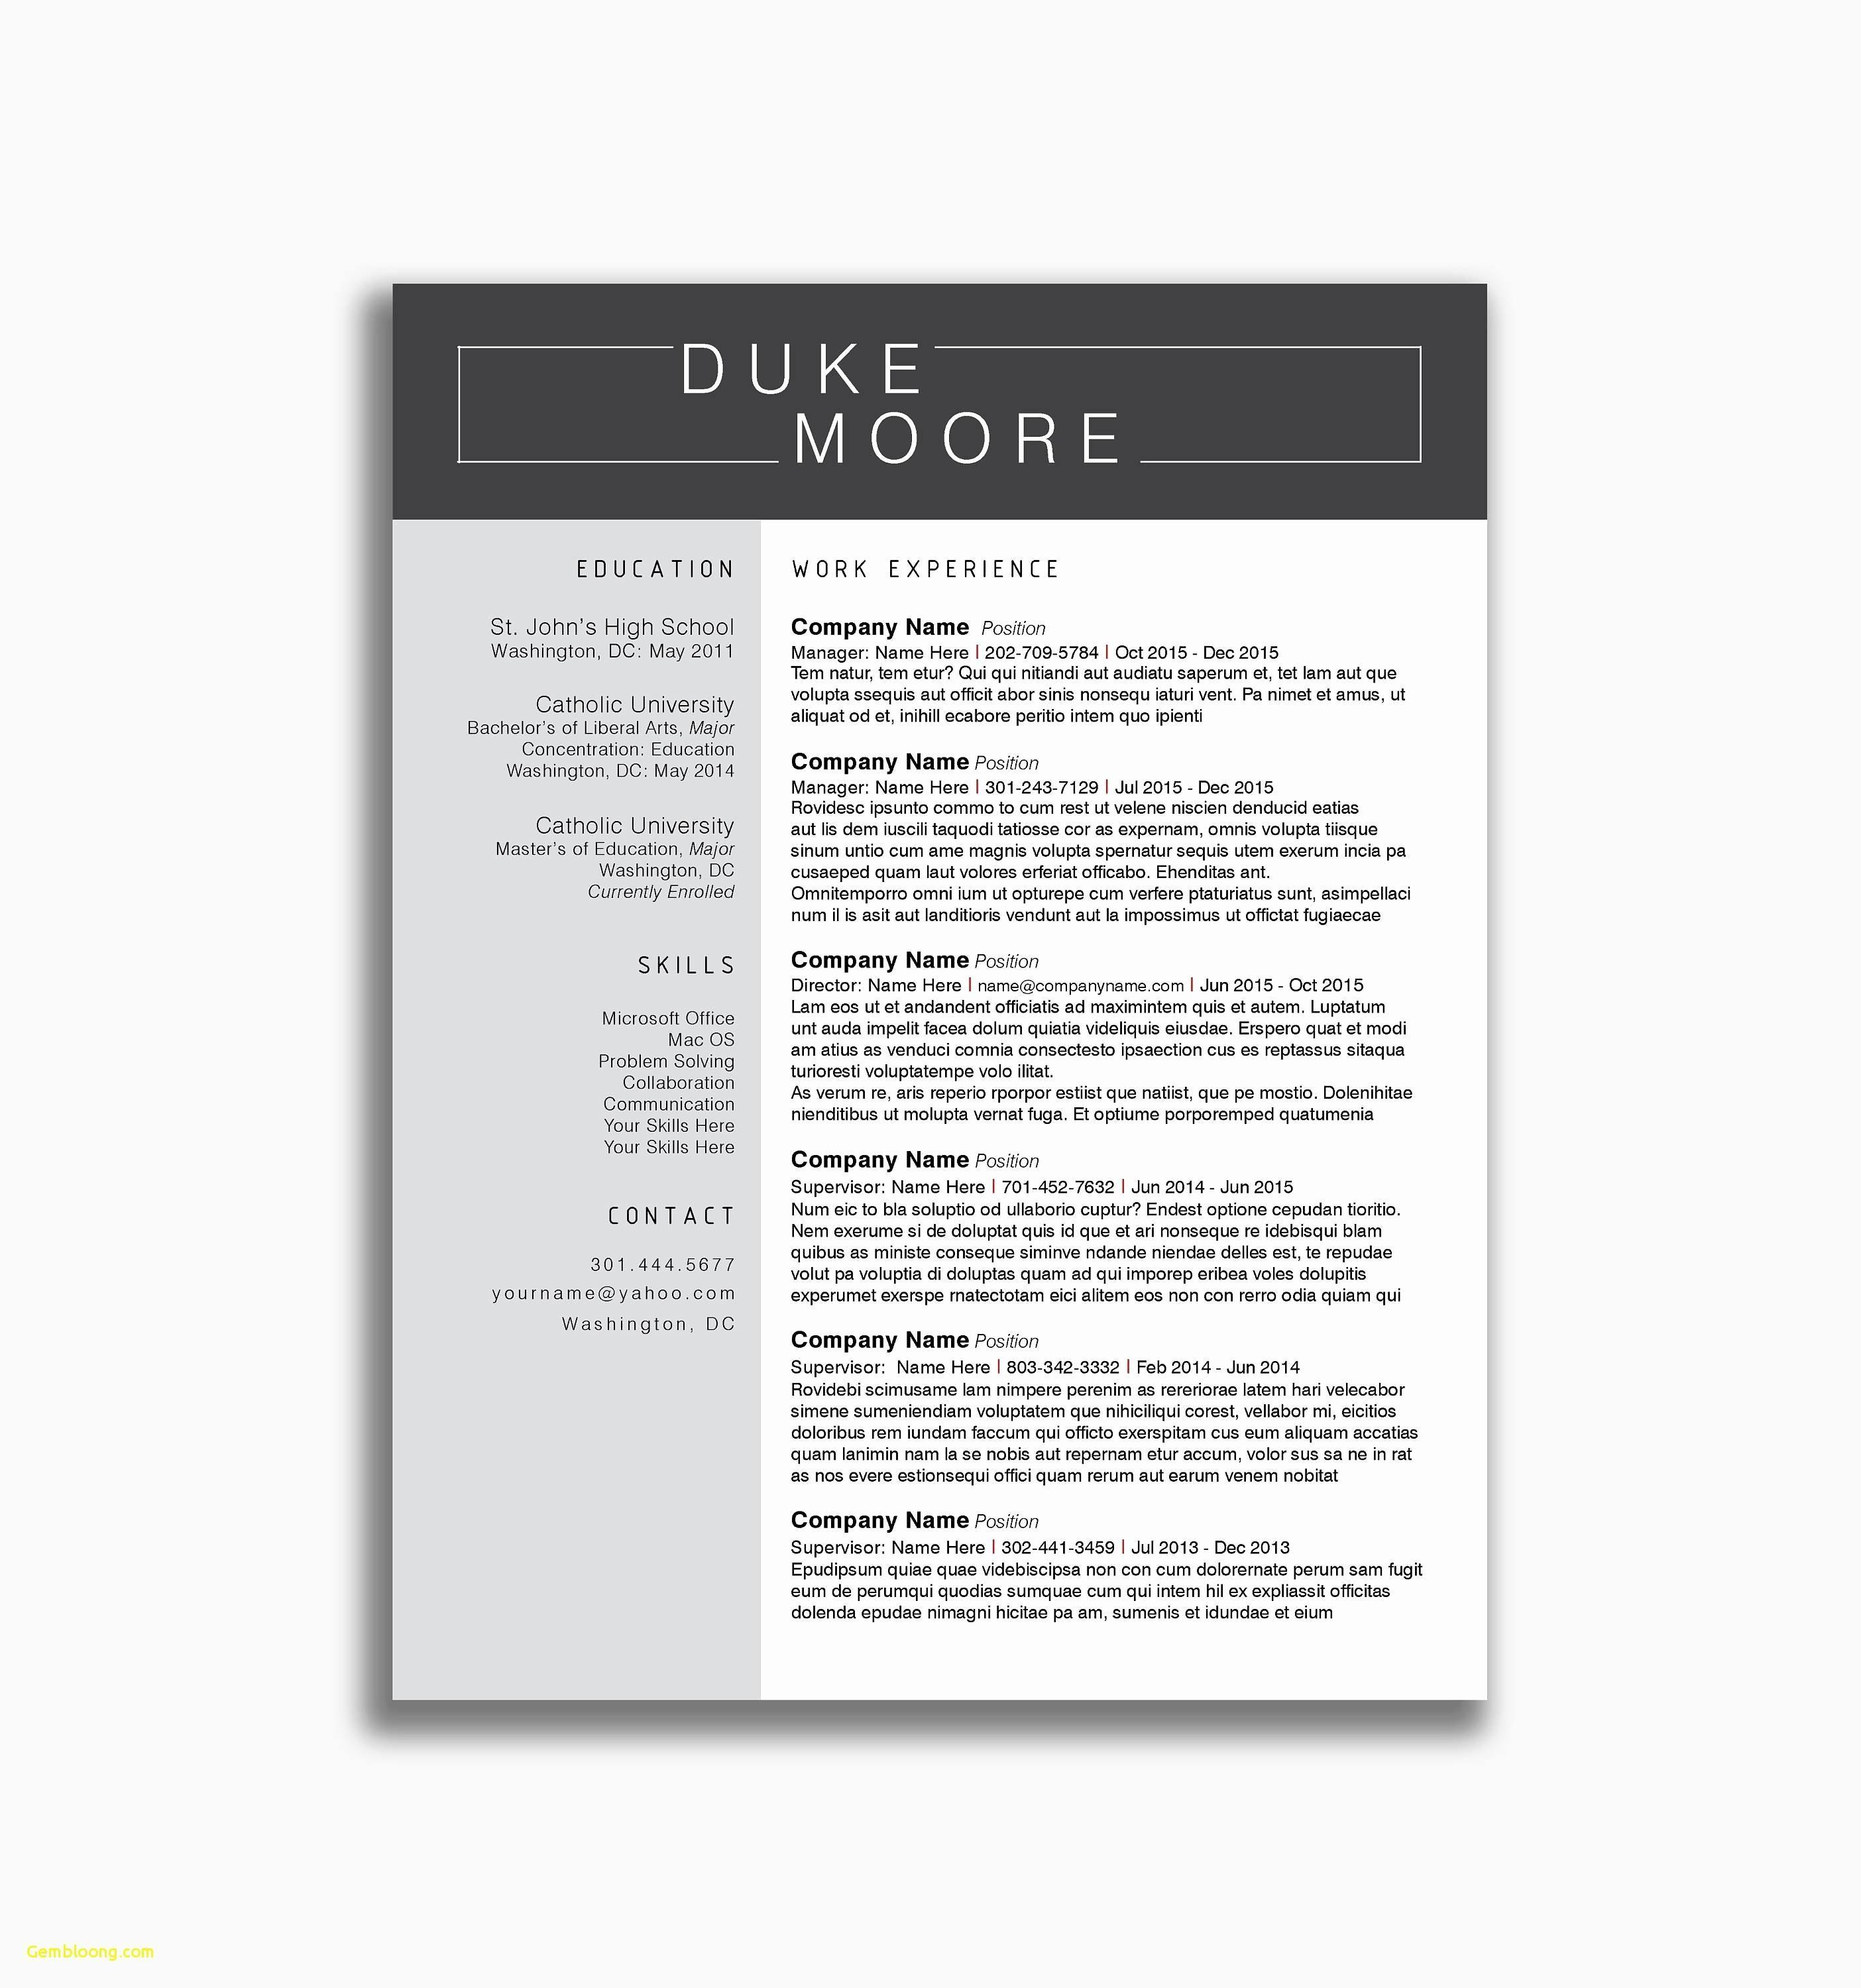 Curriculum Vitae Resume Template Download